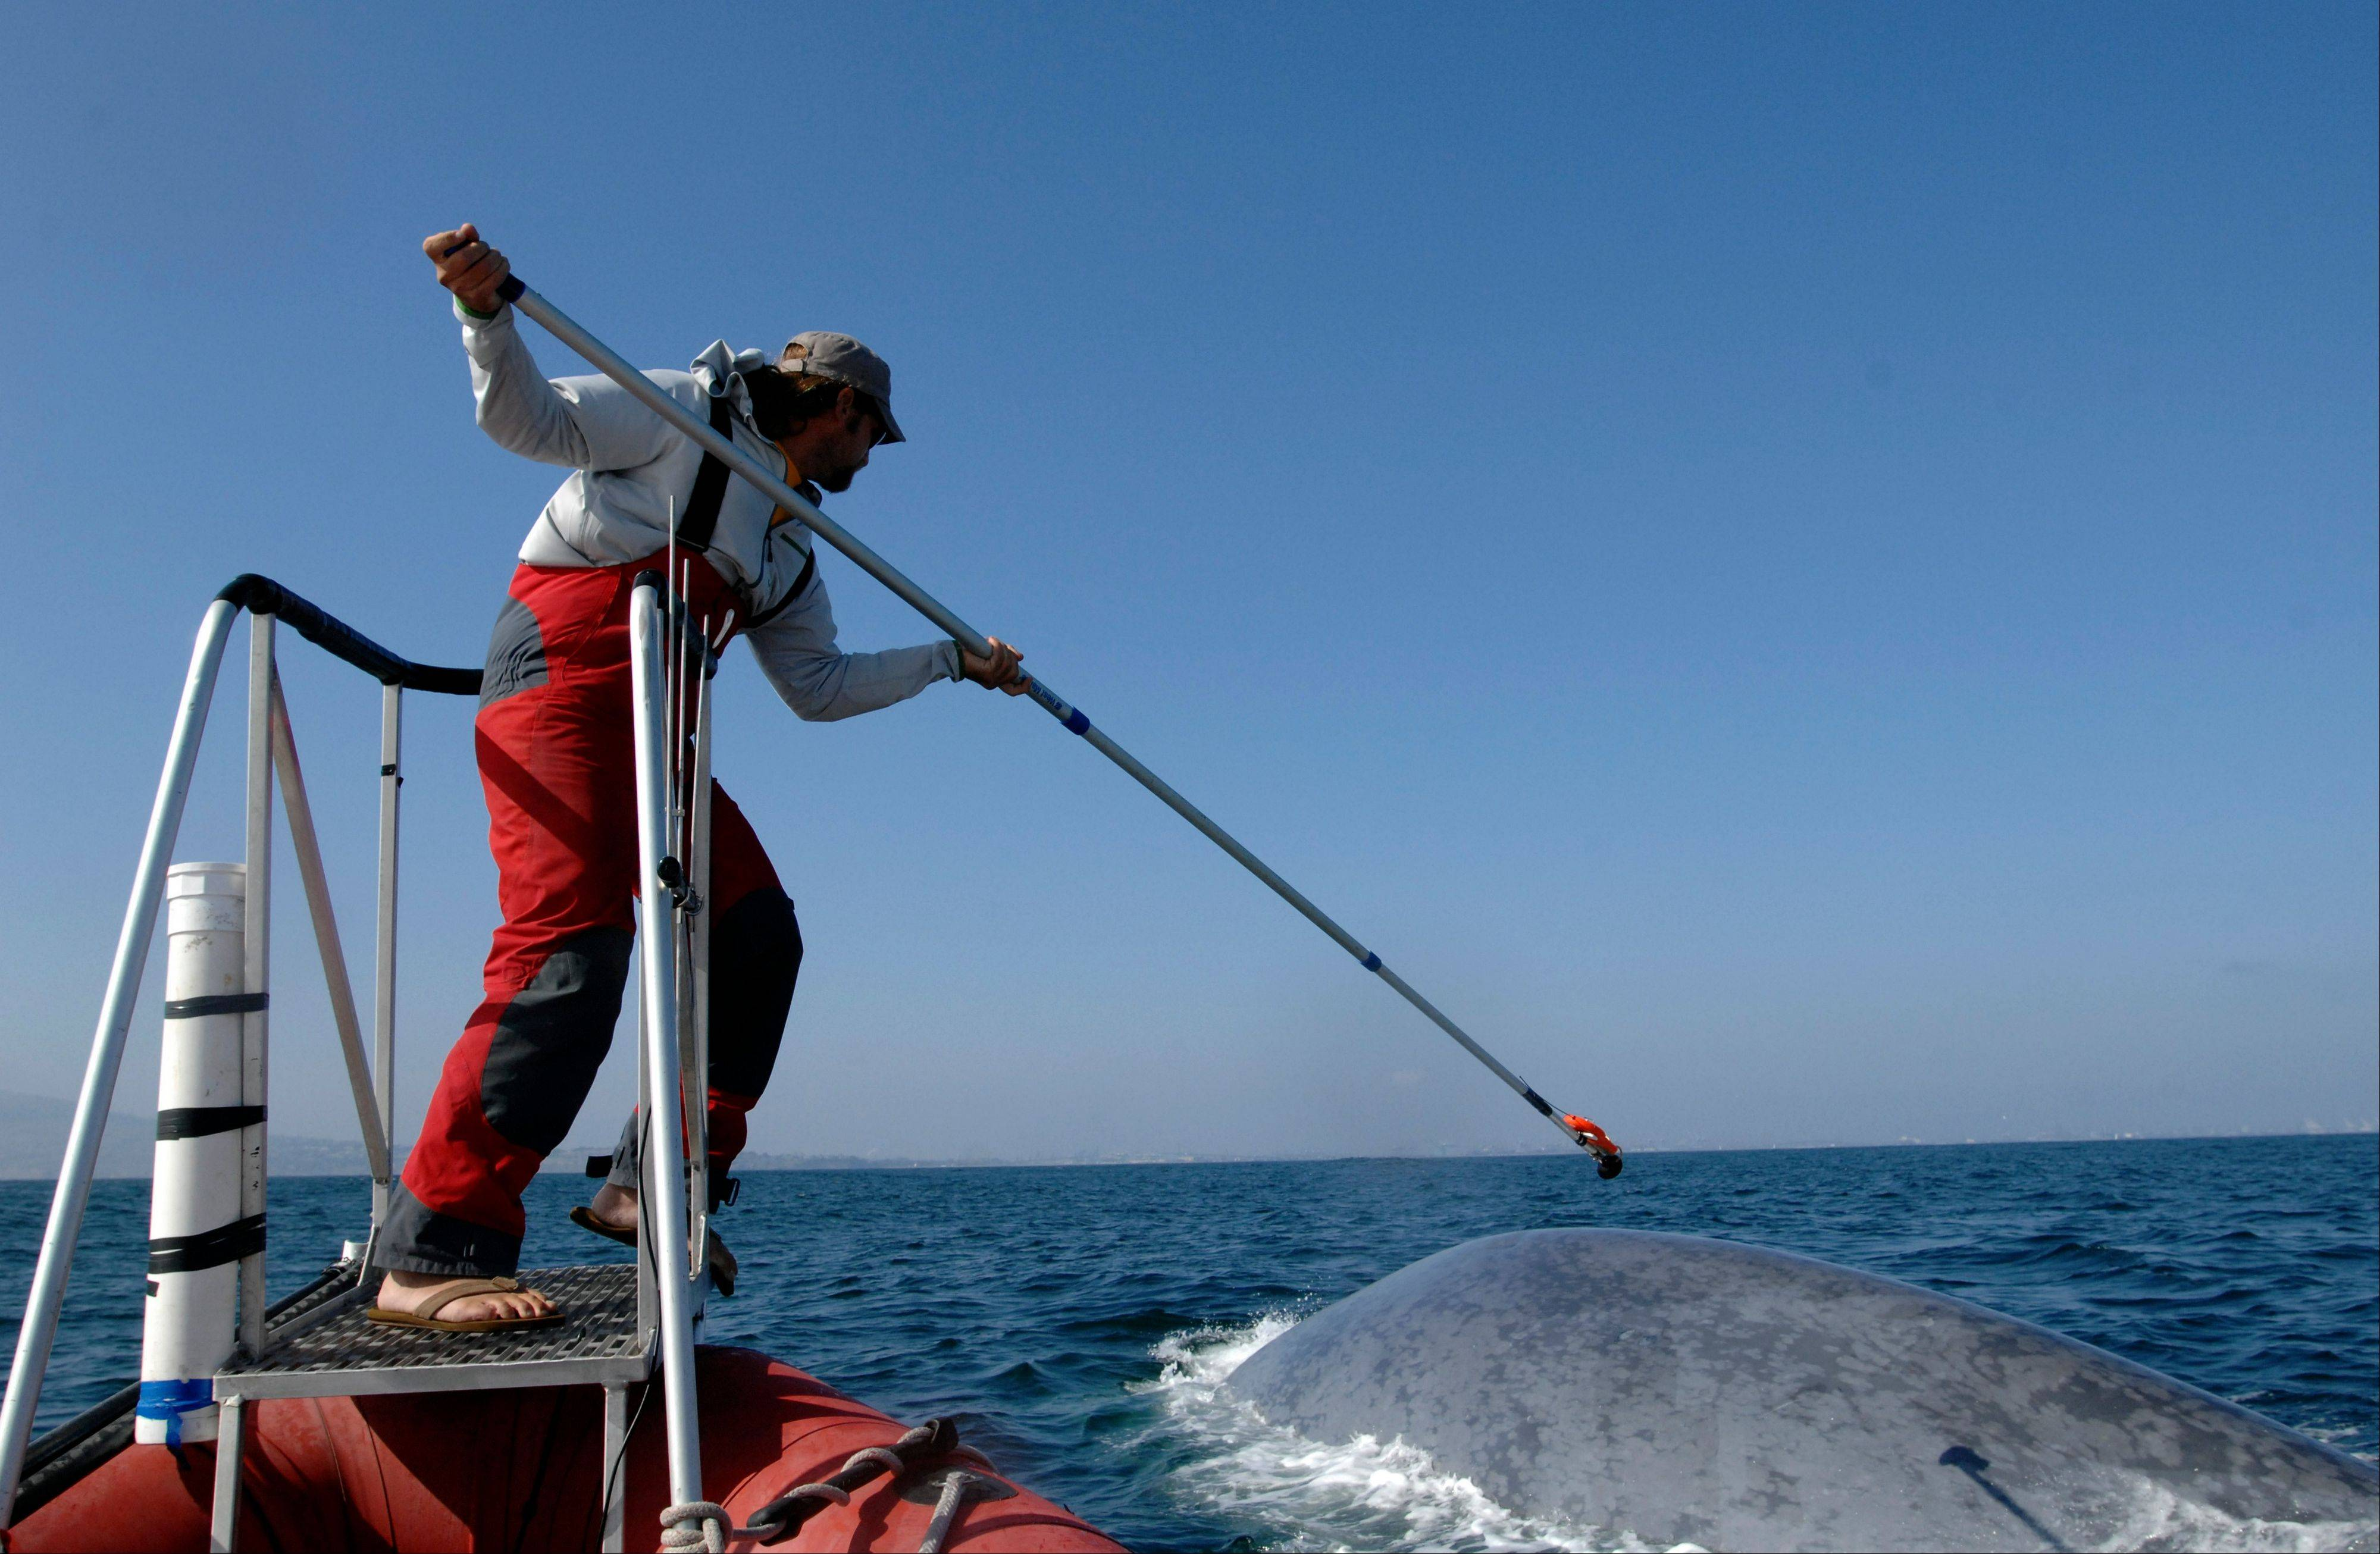 A researcher tags a blue whale off the coast of Southern California. Two recent studies found certain endangered blue whales and beaked whales stopped feeding and fled from recordings of noise similar to military sonar.